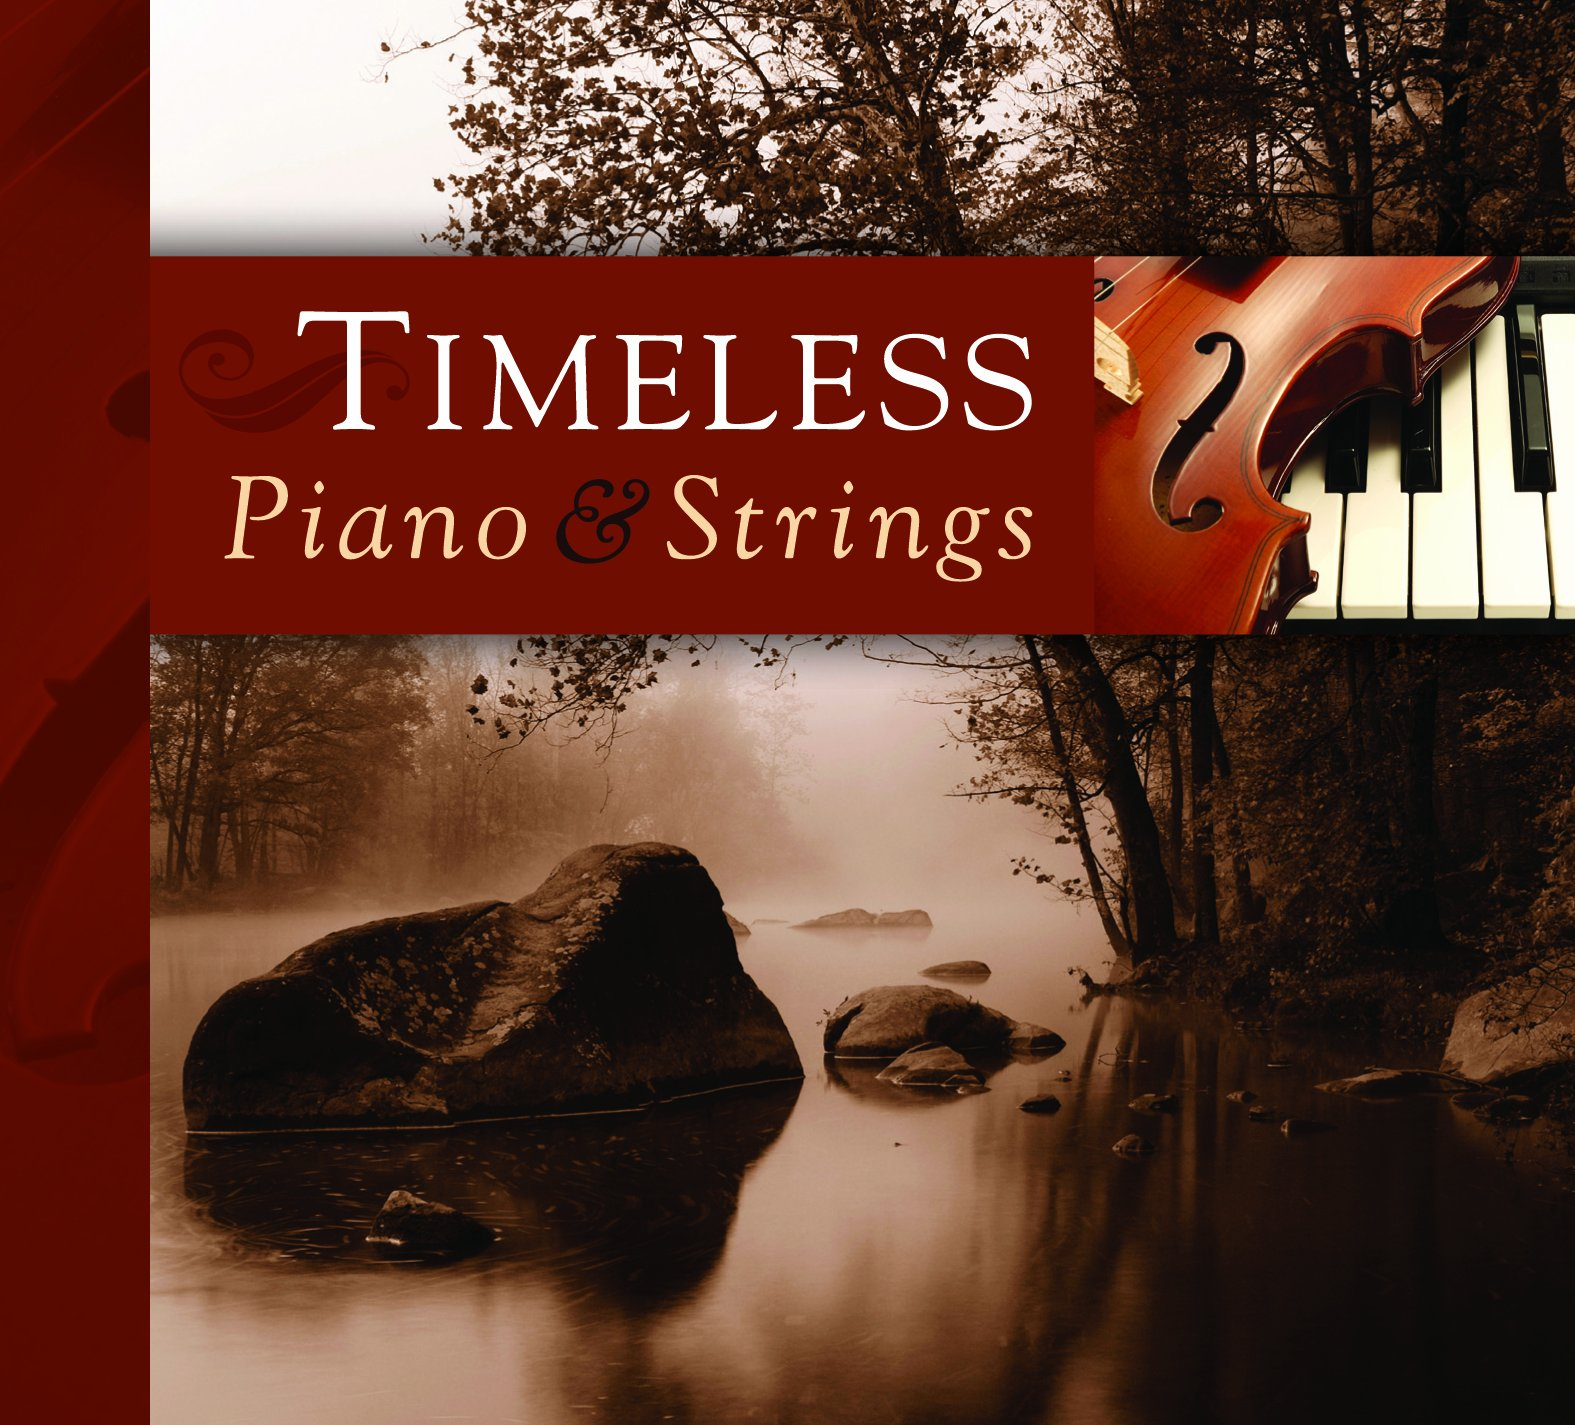 Timeless Piano & Strings